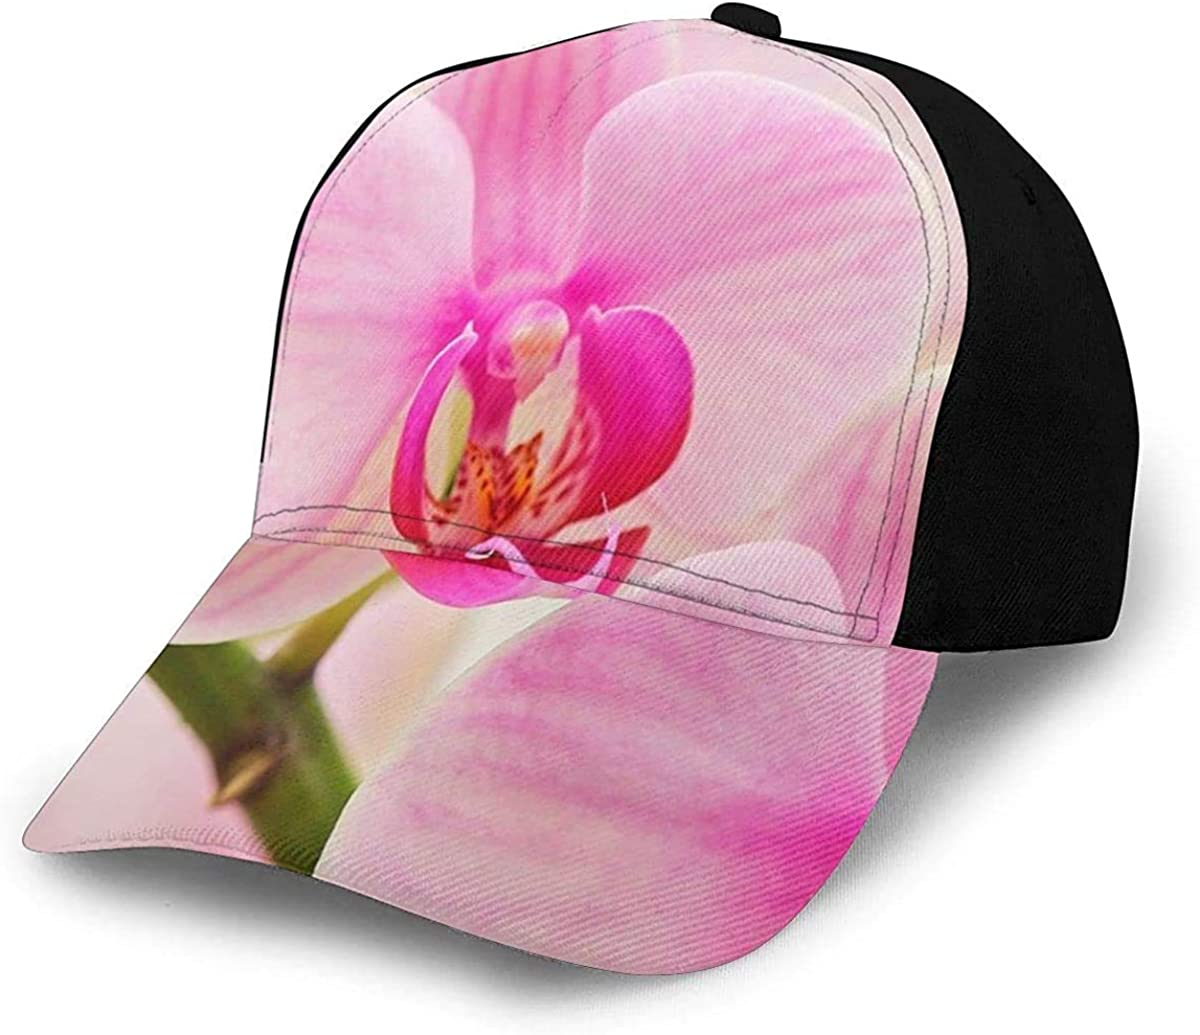 Pretty Pink Orchid Blooming Lightweight Unisex Baseball Caps Adjustable Breathable Sun Hat for Sport Outdoor